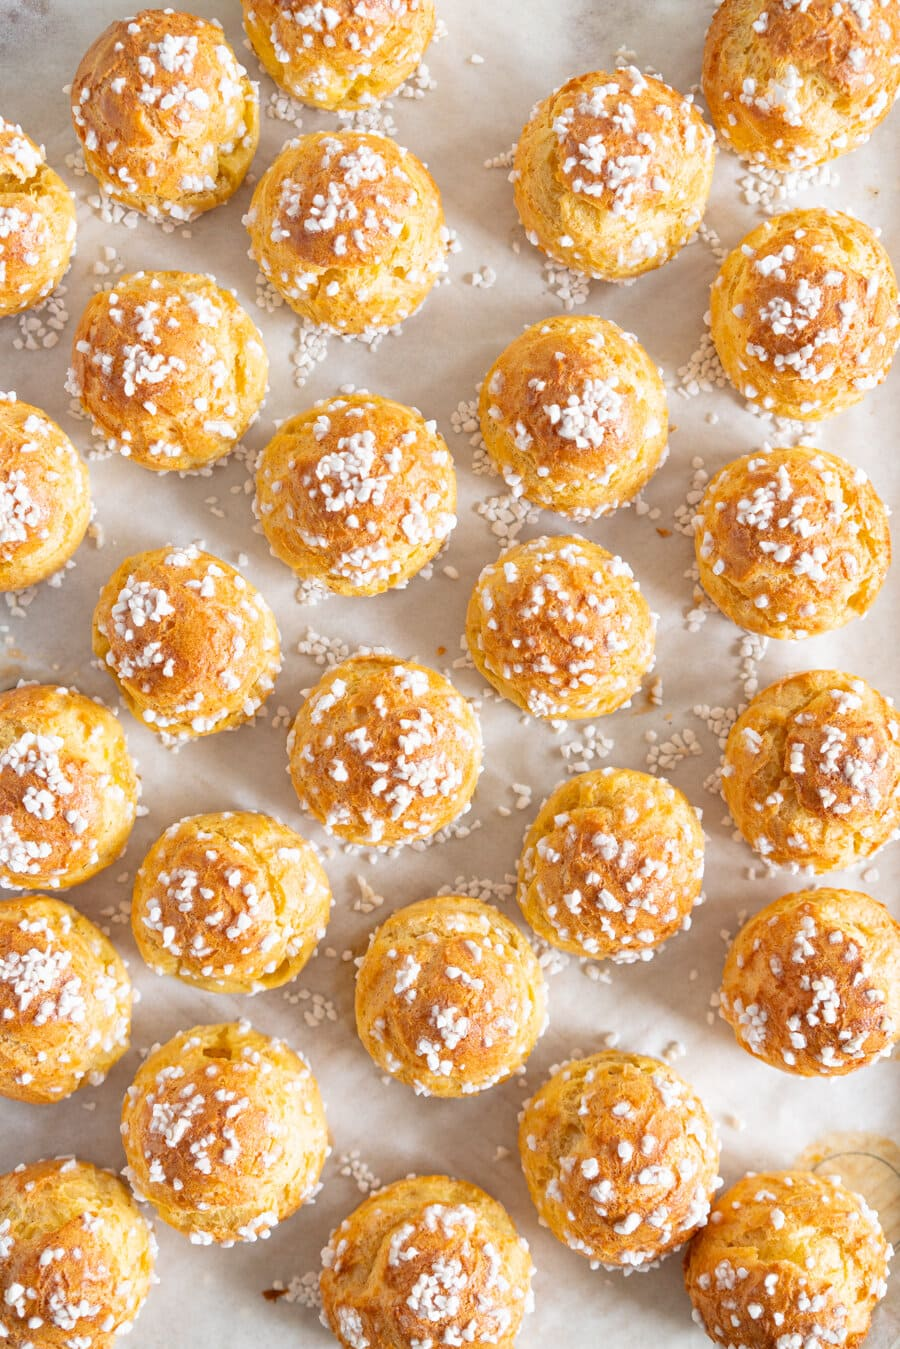 Brown Butter Chouquettes. Chouquettes are little choux pastry bites, piped into rounds and finished with pearl sugar before being baked to golden perfection. Choux is easy to make and is easy to freeze, making these the perfect treat. Brown butter choux has a delicious depth of flavour and is a perfect easy twist on a classic.